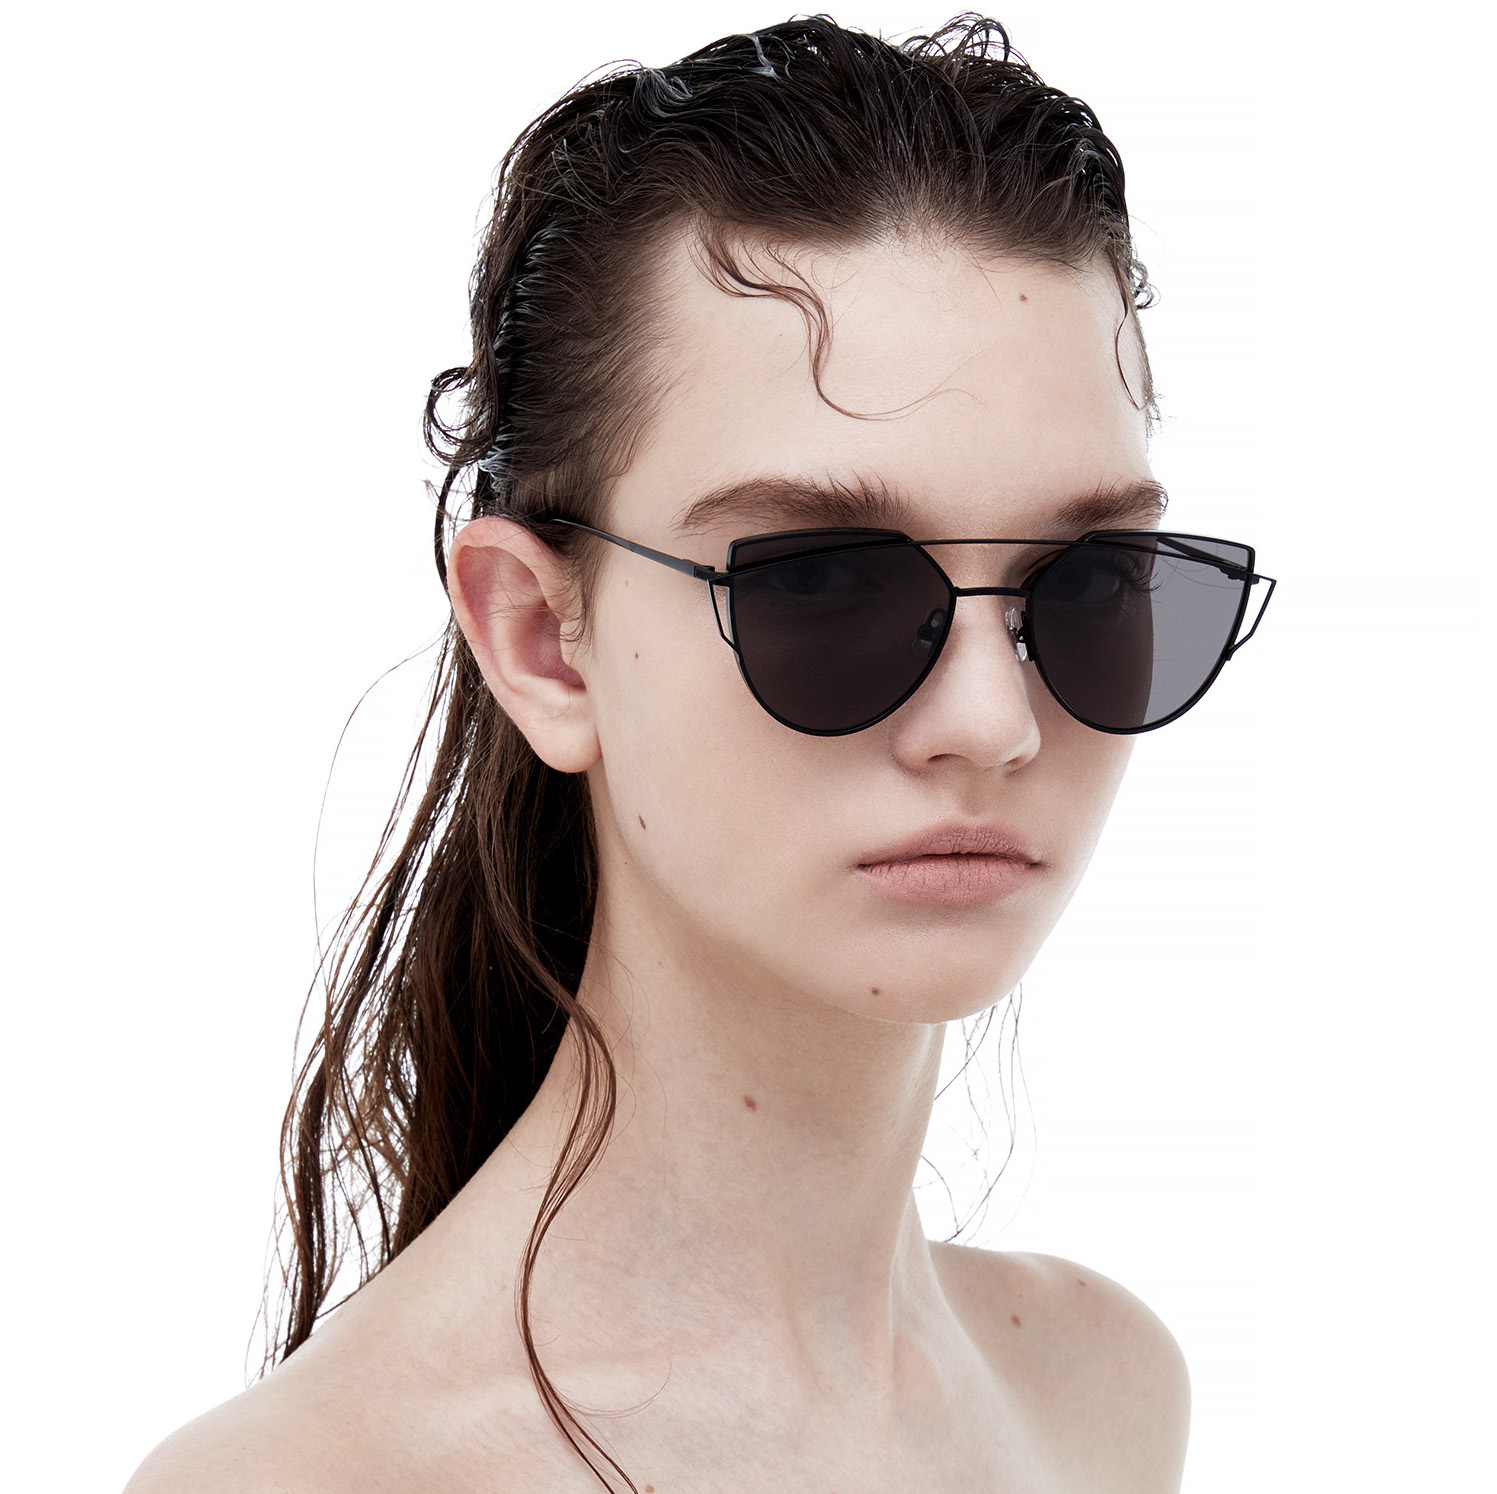 Shop Buy Gentle Monster Brand Eyewear Glasses Sunglasses Eyewear Korean Trend Celebrity Buy Shop